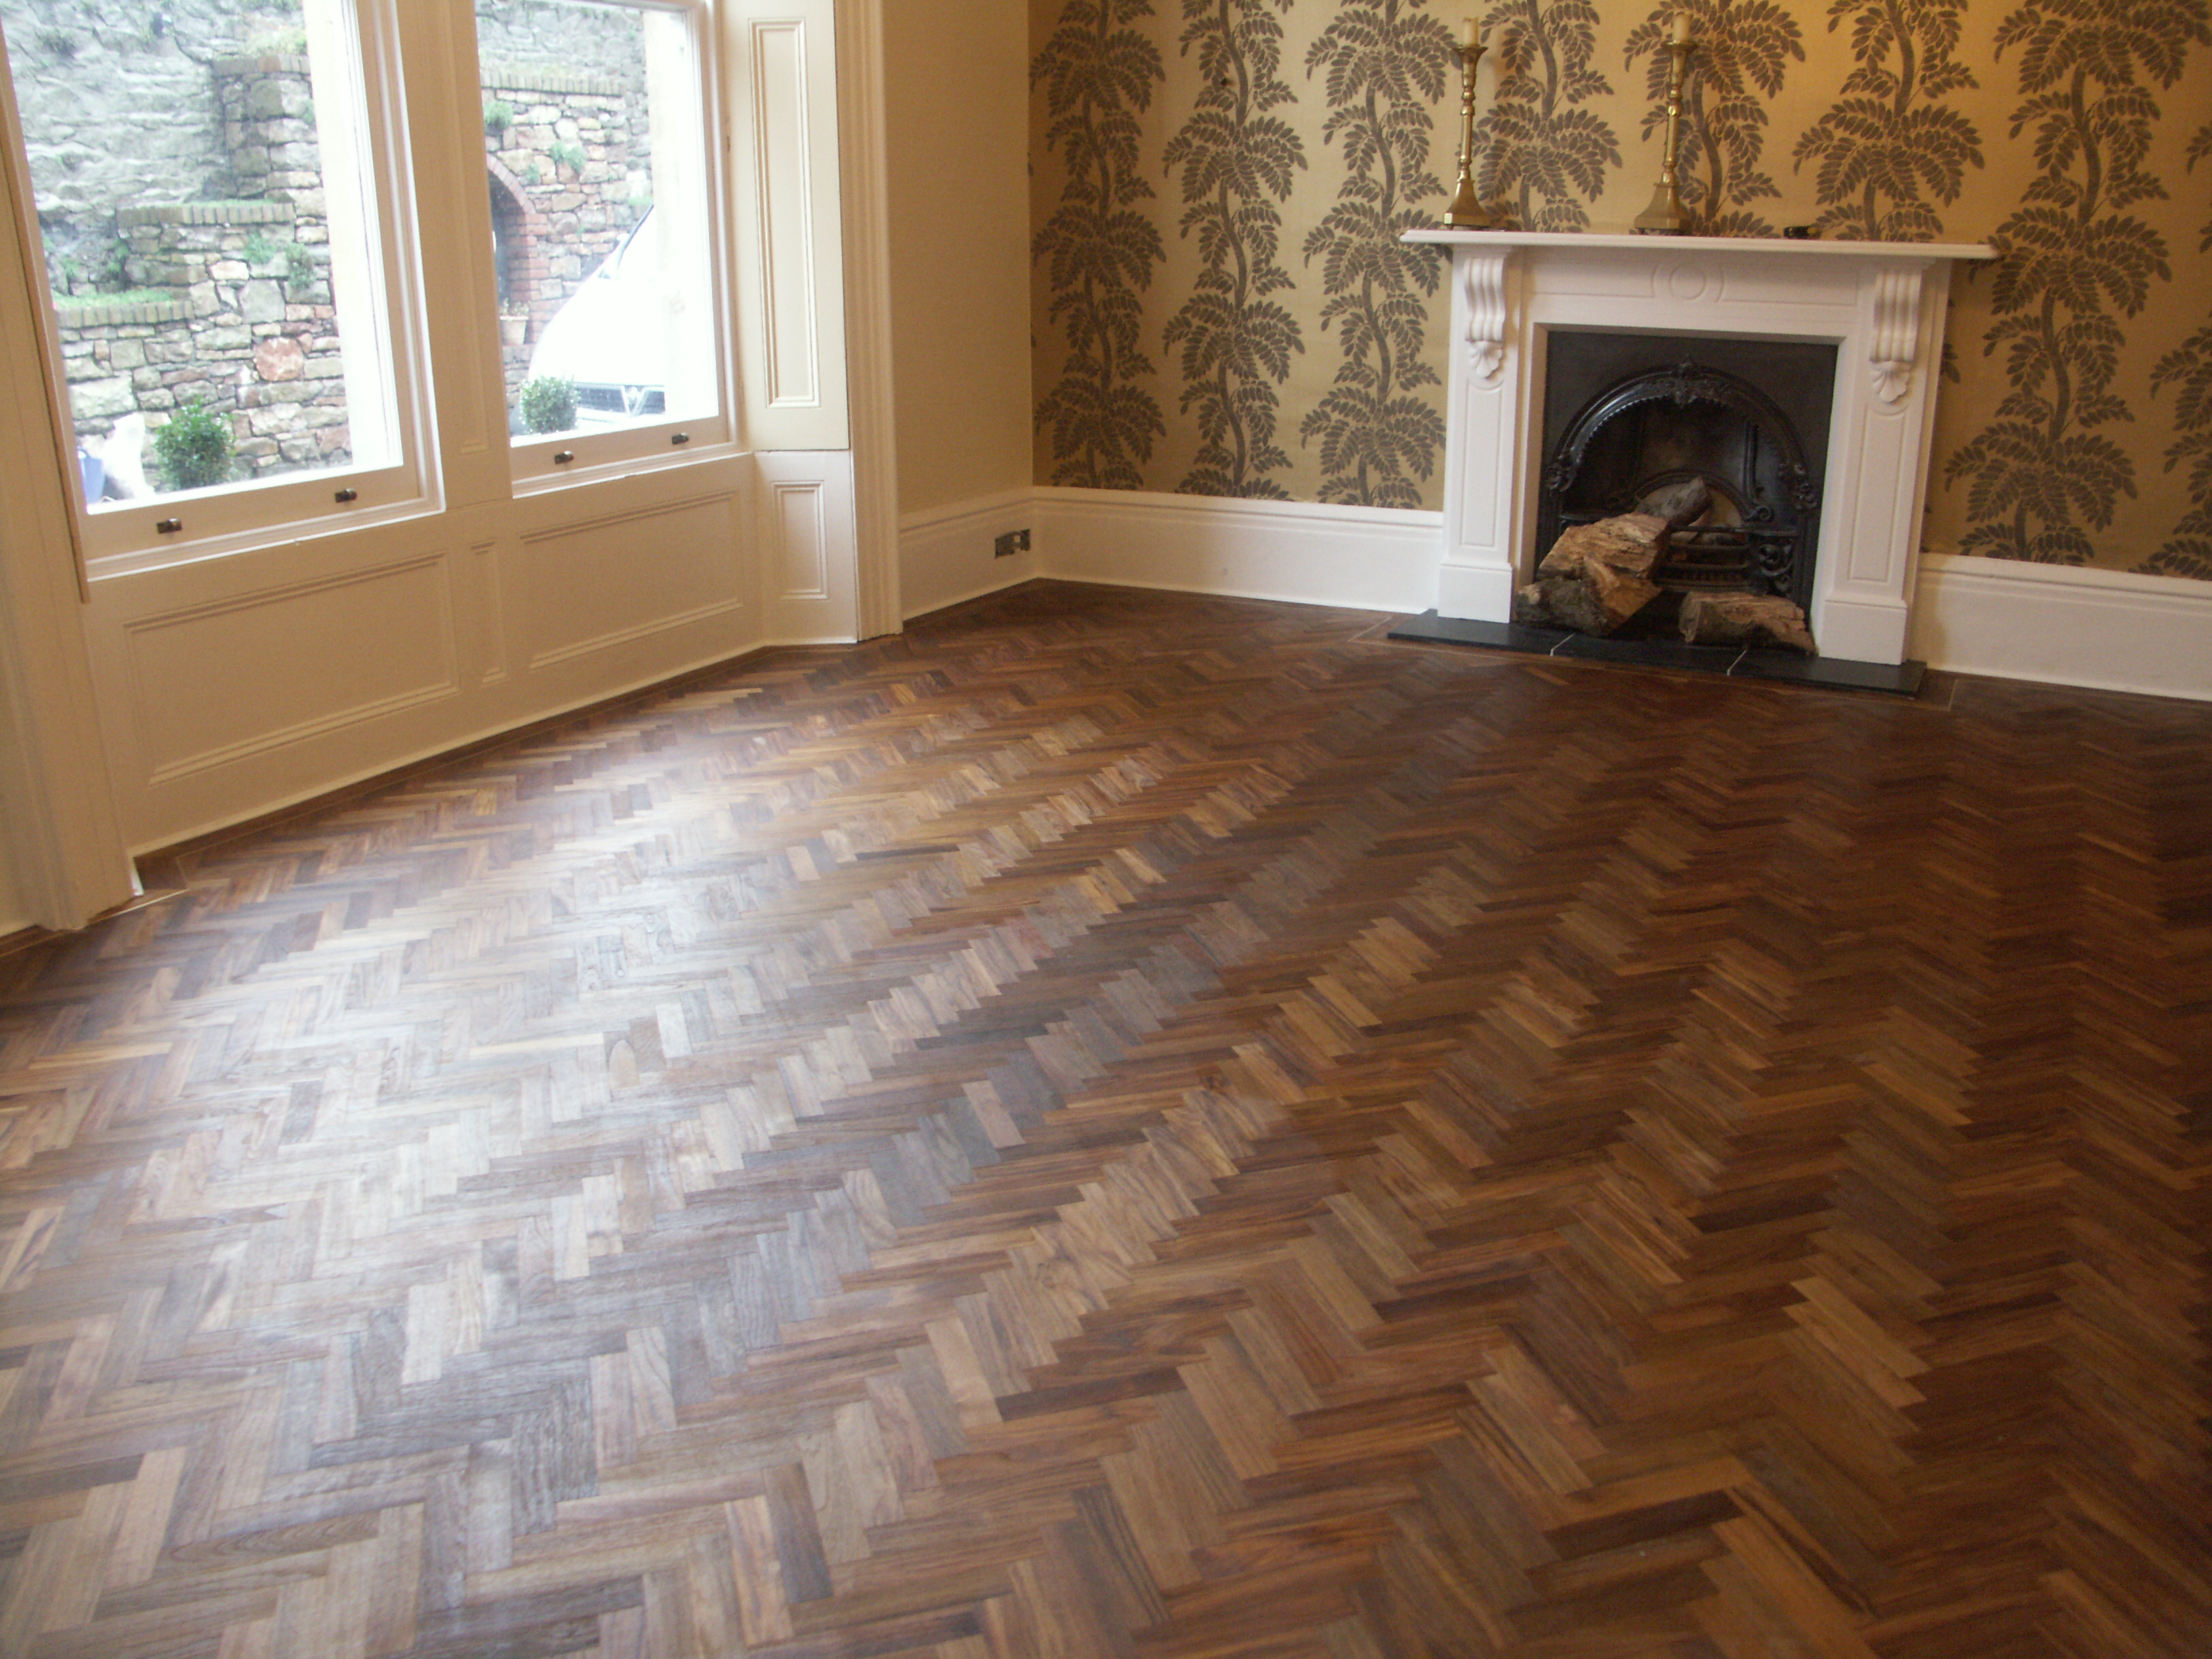 Herringbone las hardwoods Tile wood floors